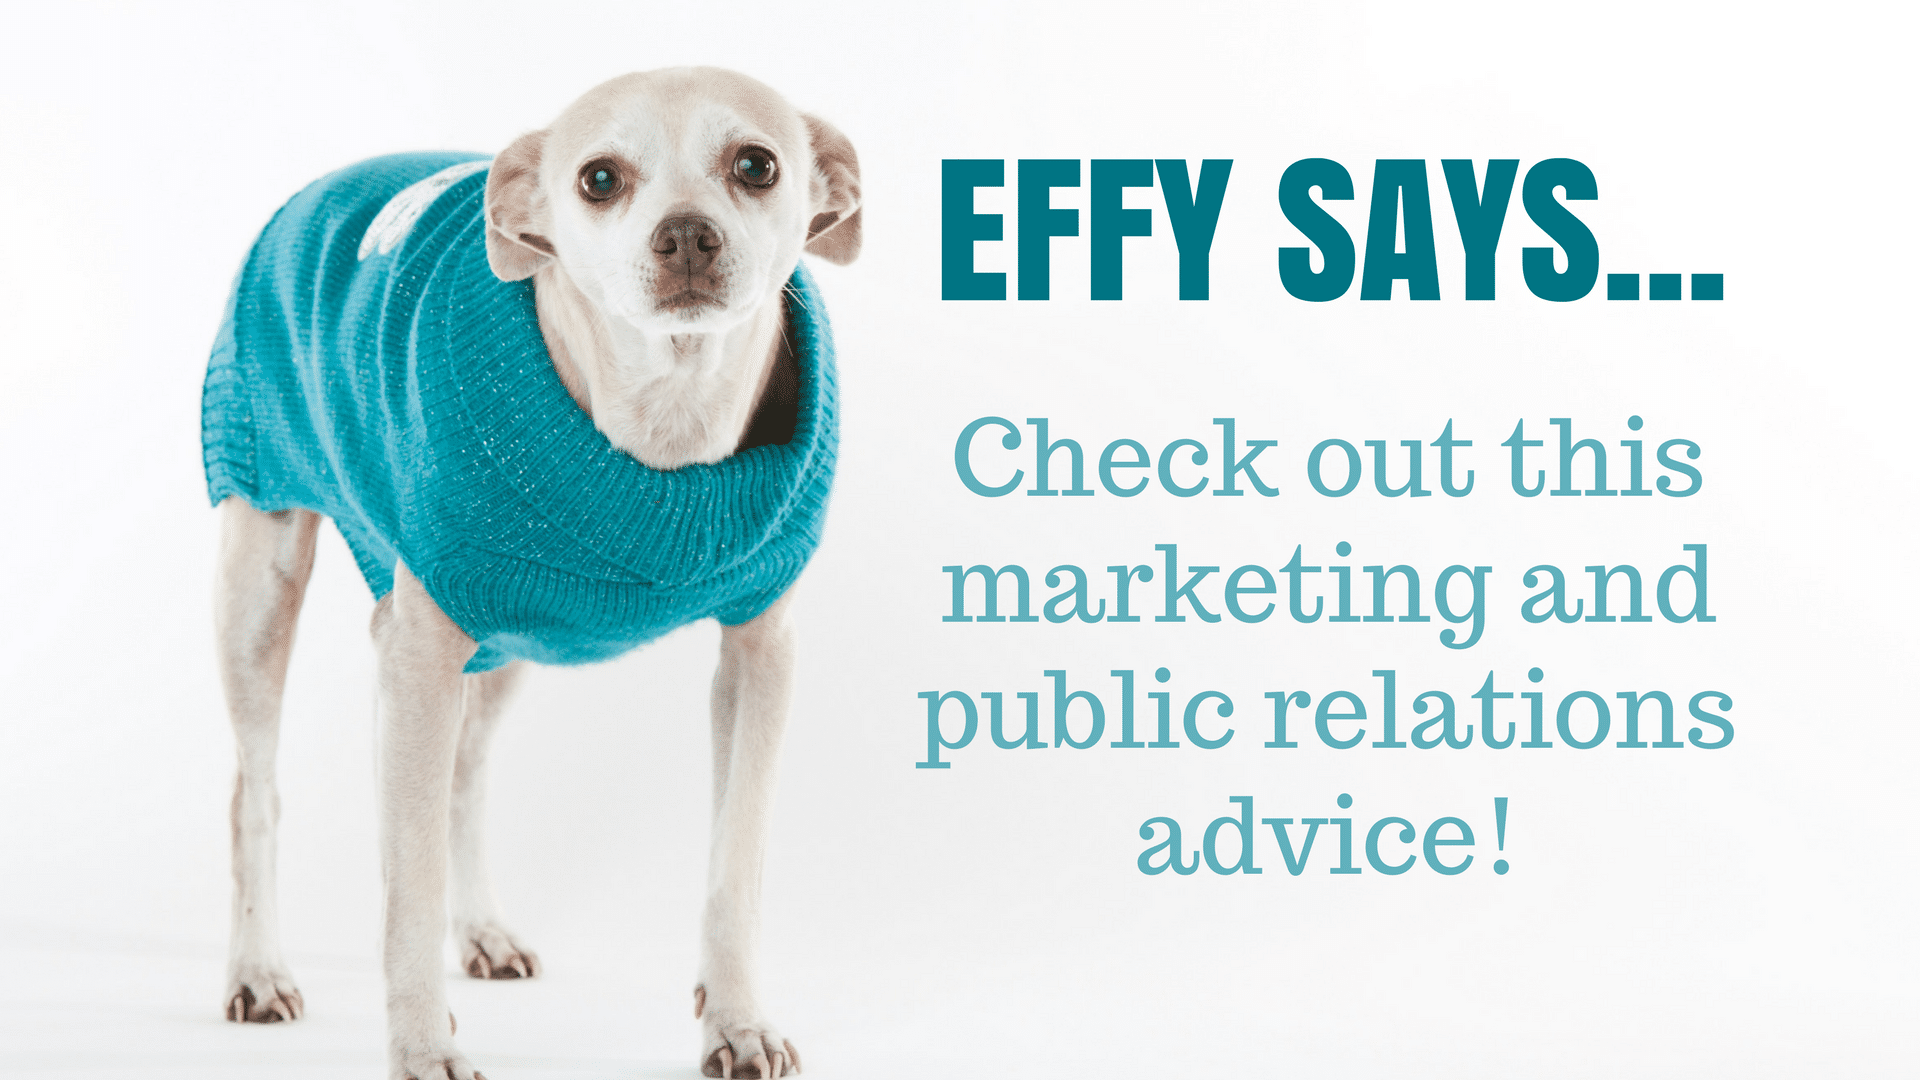 Effy says… Don't Pitch an Advertisement!